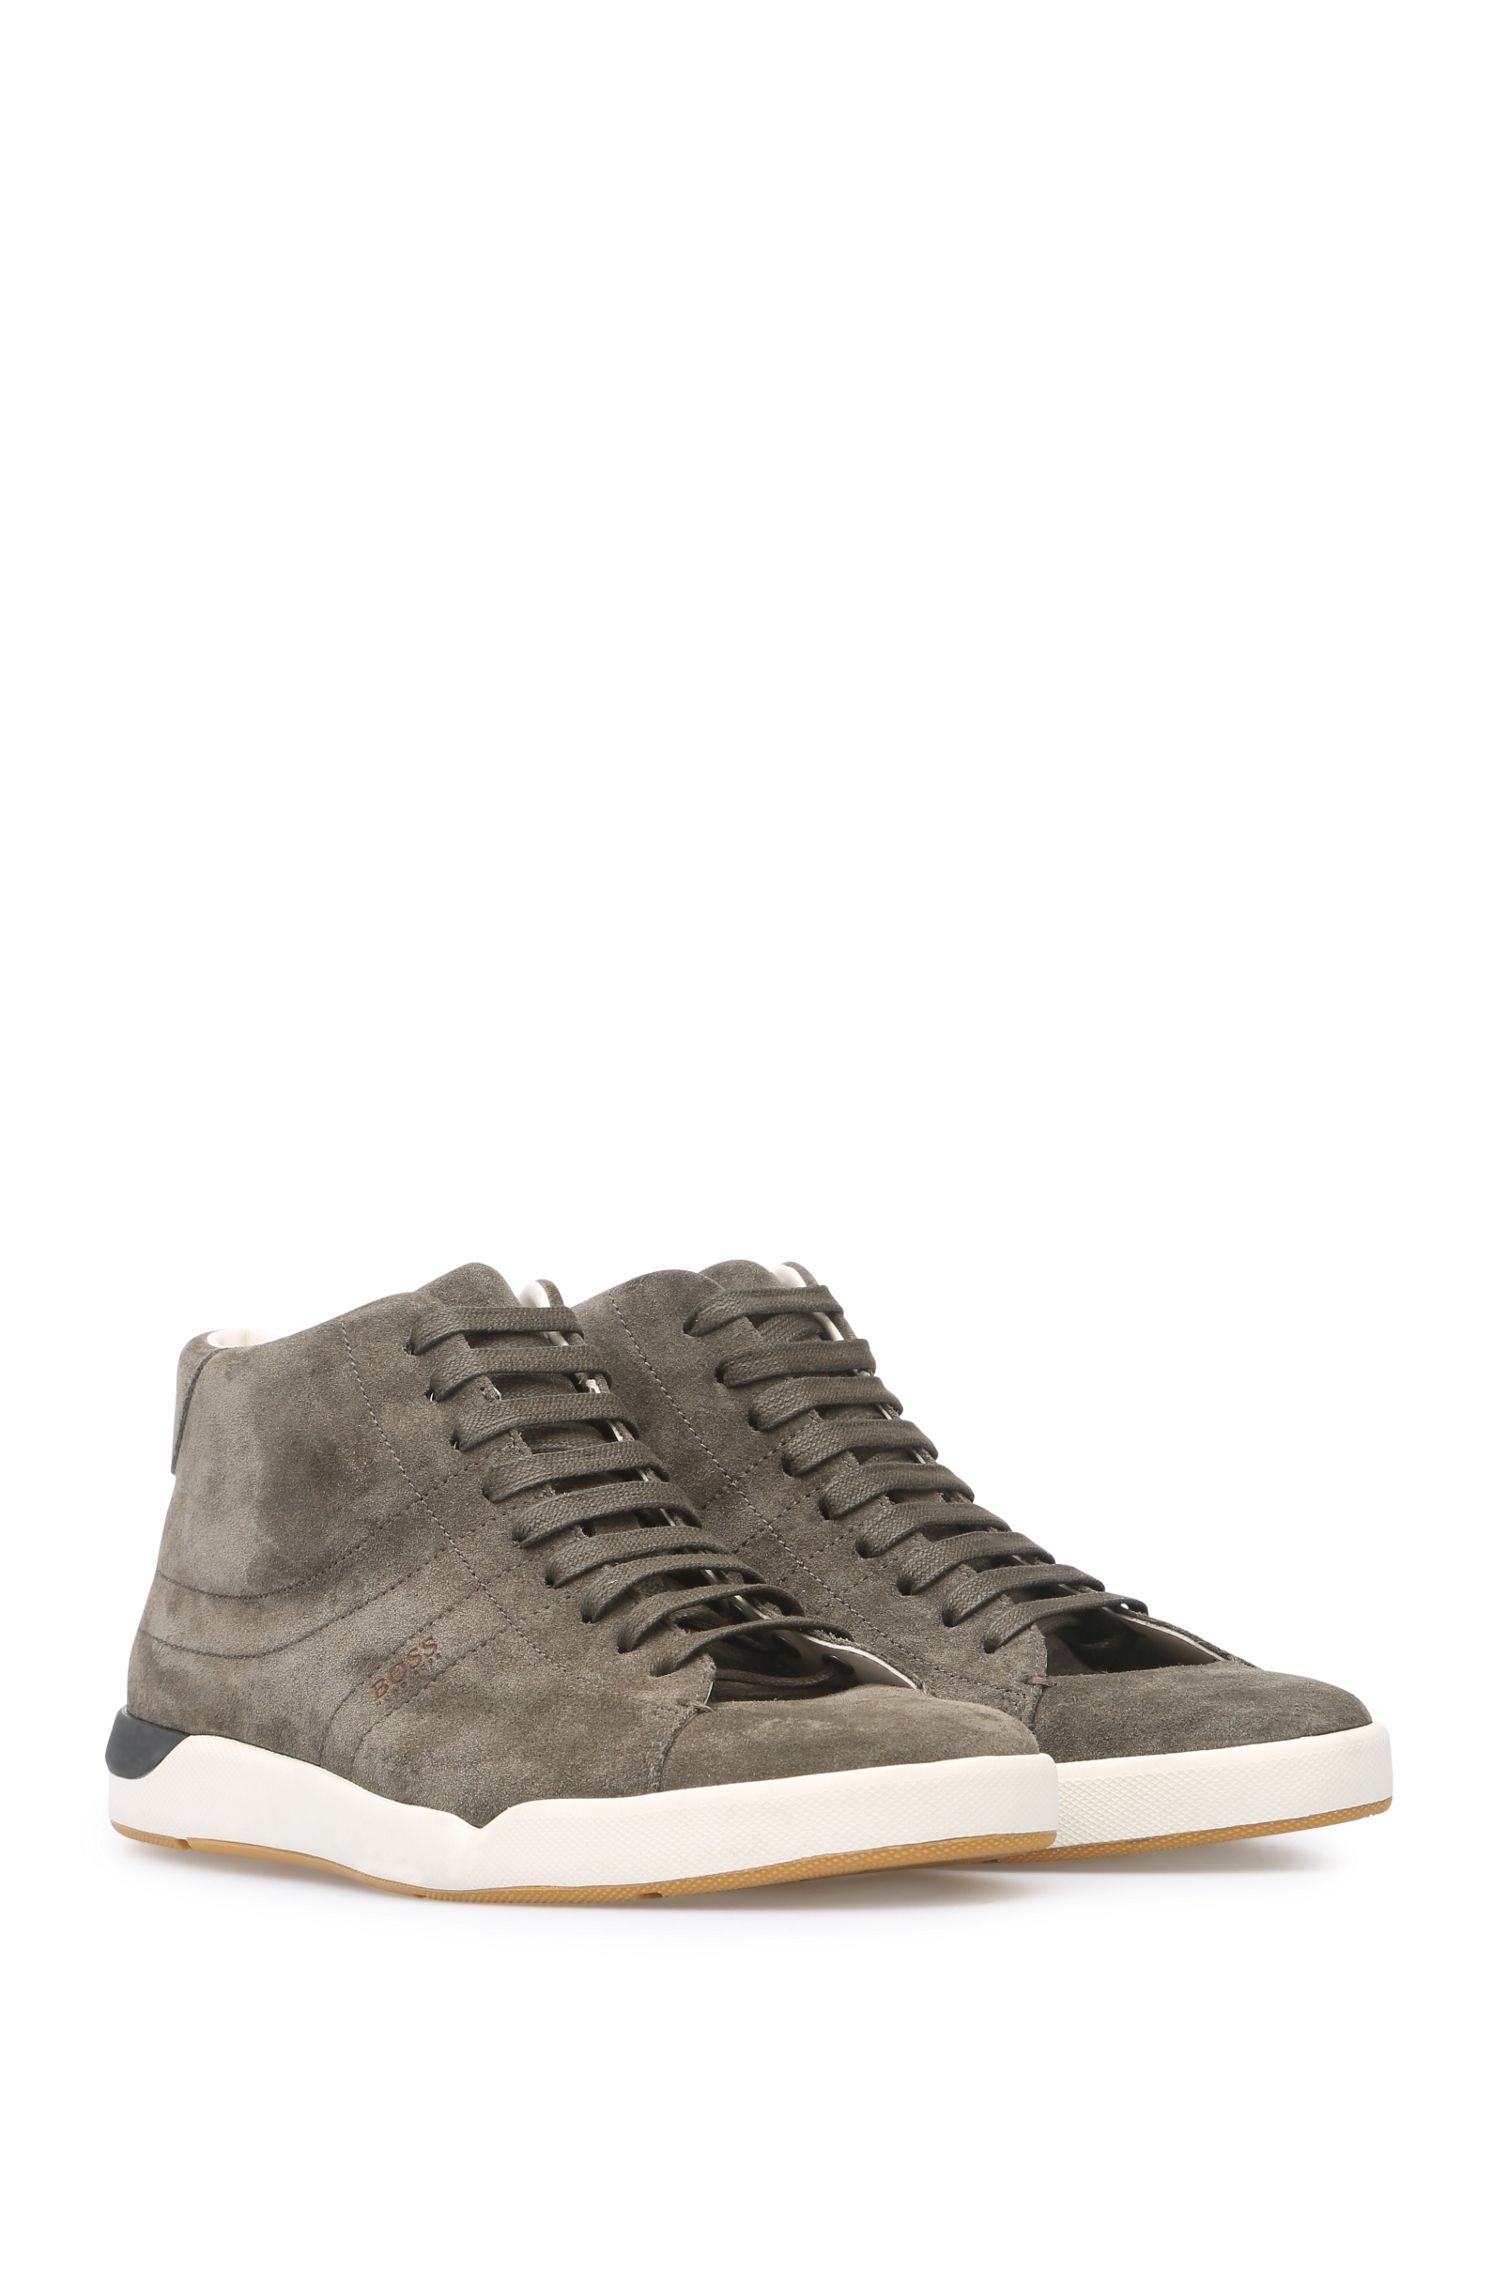 'Stillnes Midc Sd' | Suede Calfskin Mid Top Sneakers